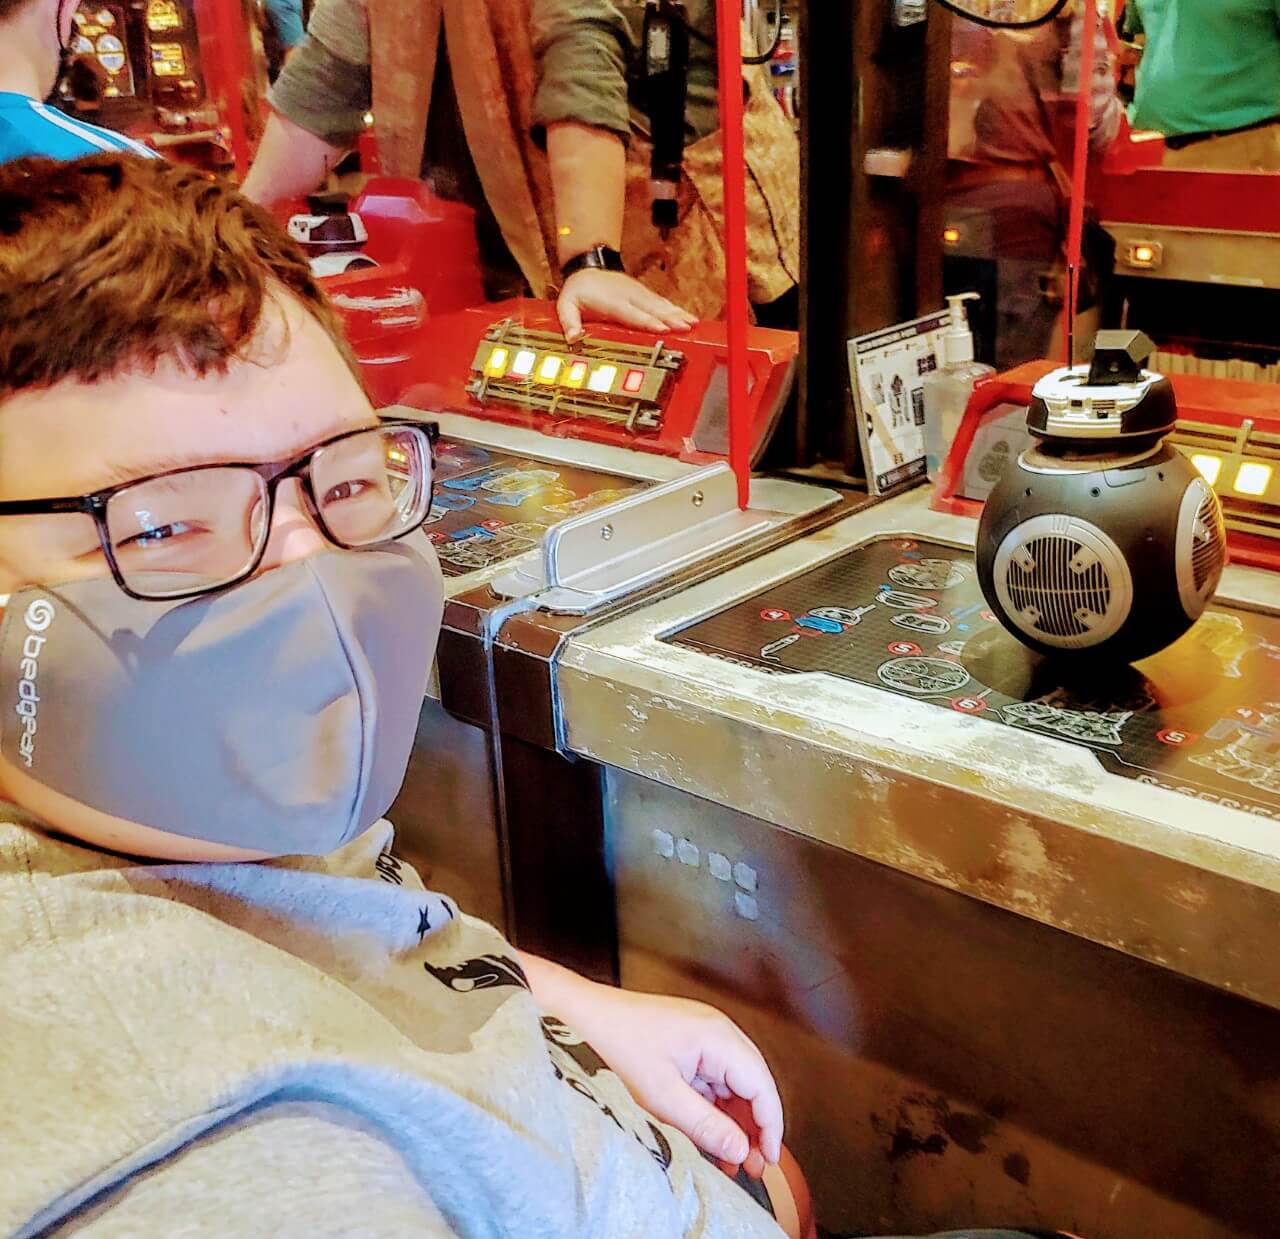 Teen boy with Chiari malformation building a droid at Disney